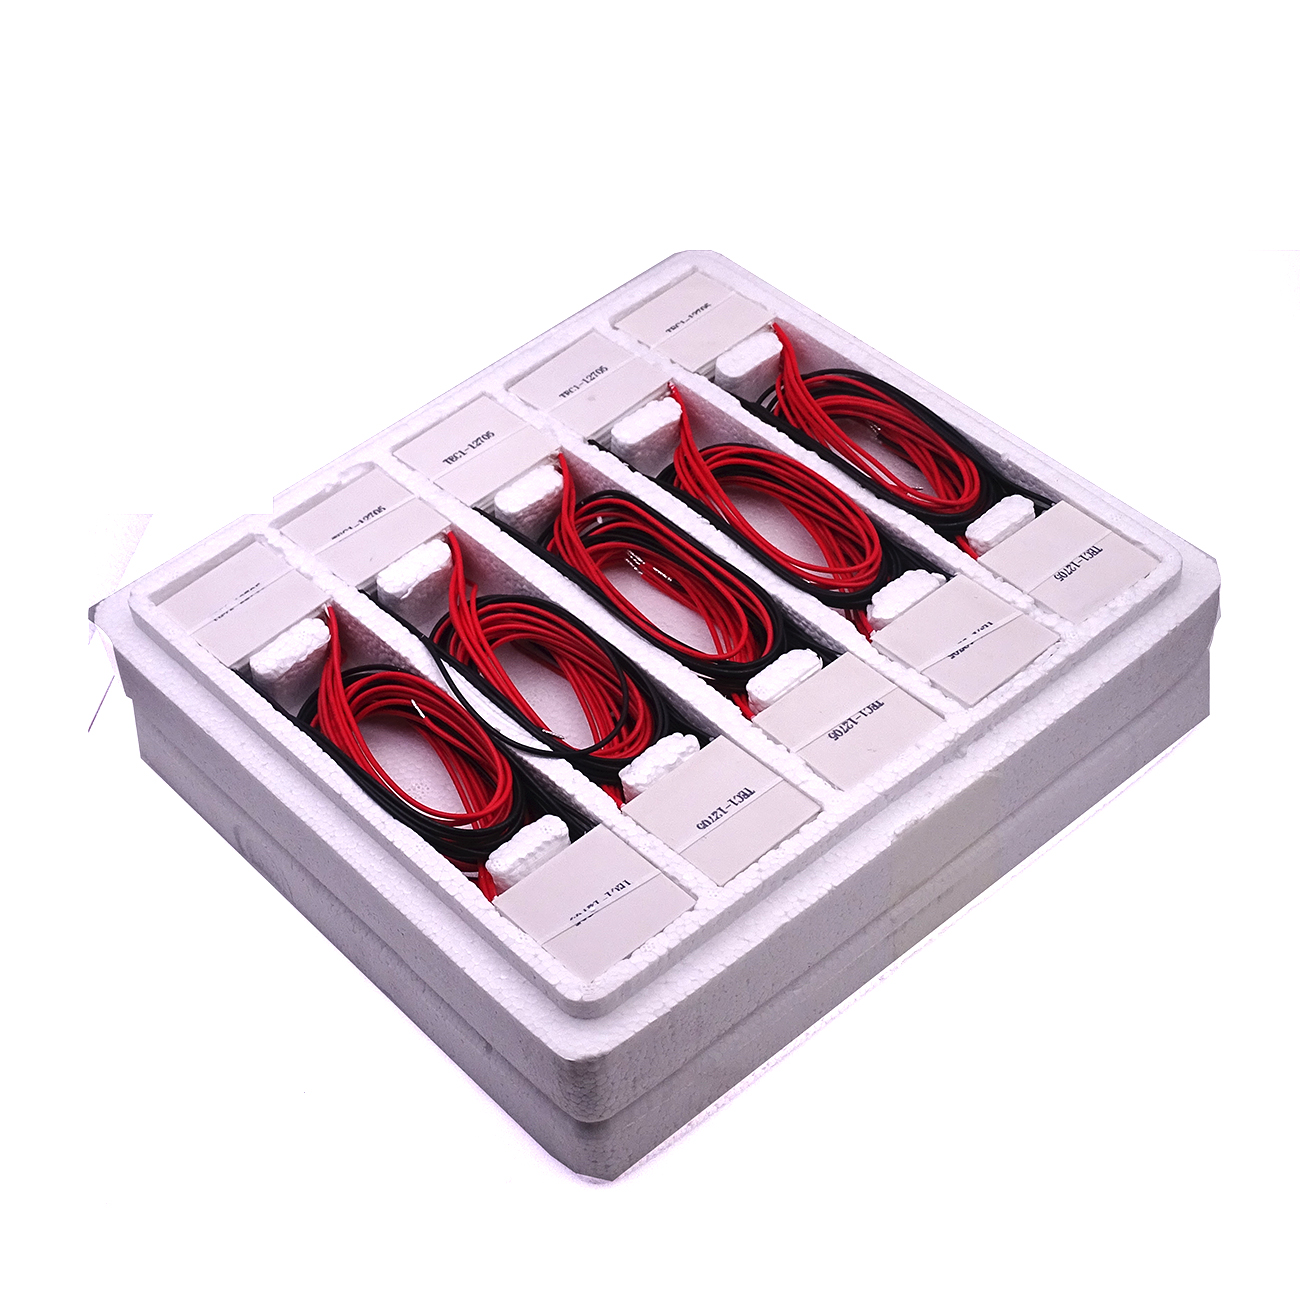 60pcs 100% New the cheapest price TEC1 12705 TEC  12705 42.5W 15.4V 5A TEC Thermoelectric Cooler Peltier (TEC1 12705)(one box)-in Integrated Circuits from Electronic Components & Supplies